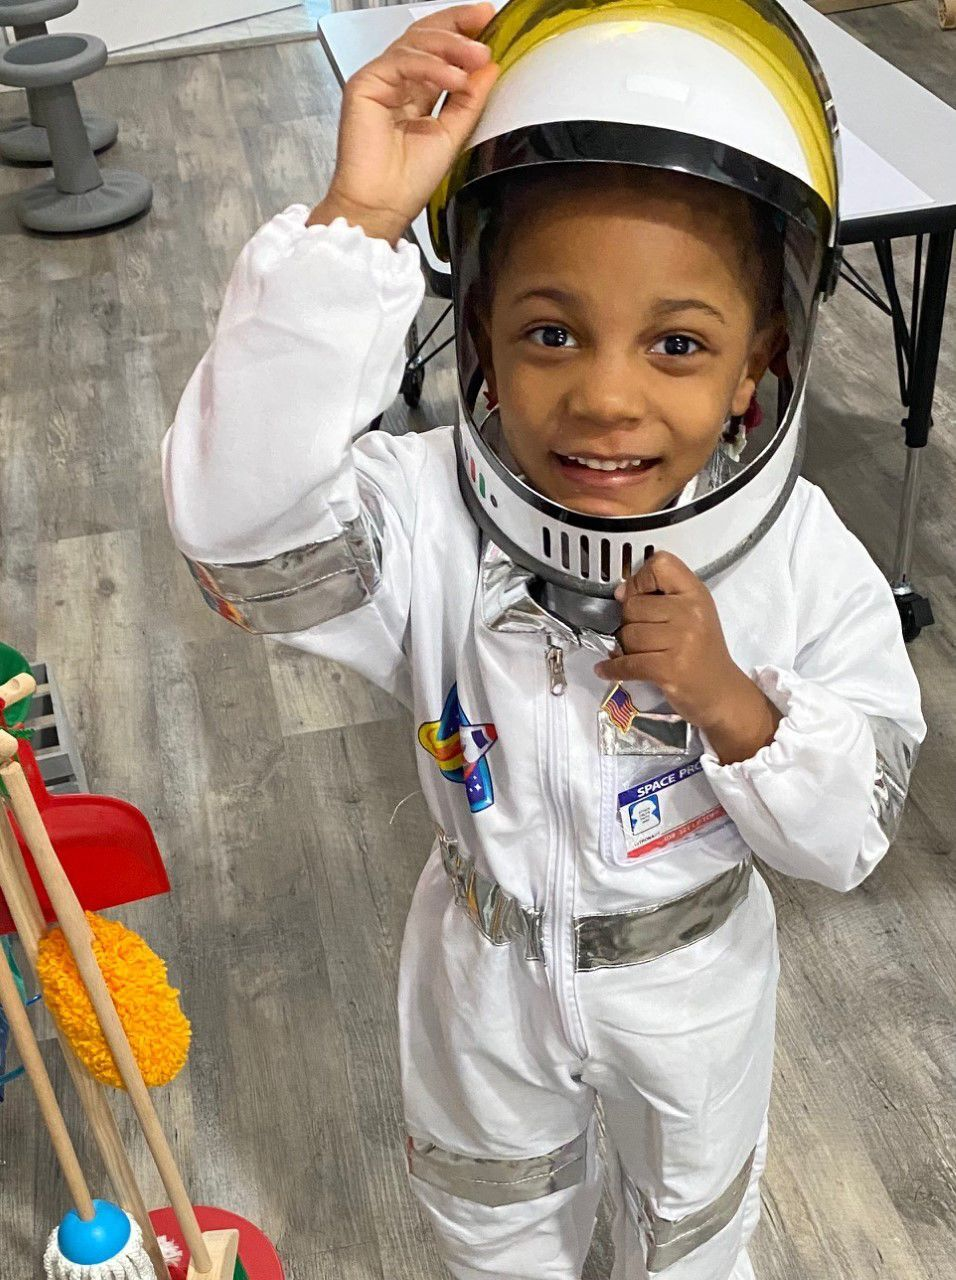 Preschooler dresses up as an astronaut